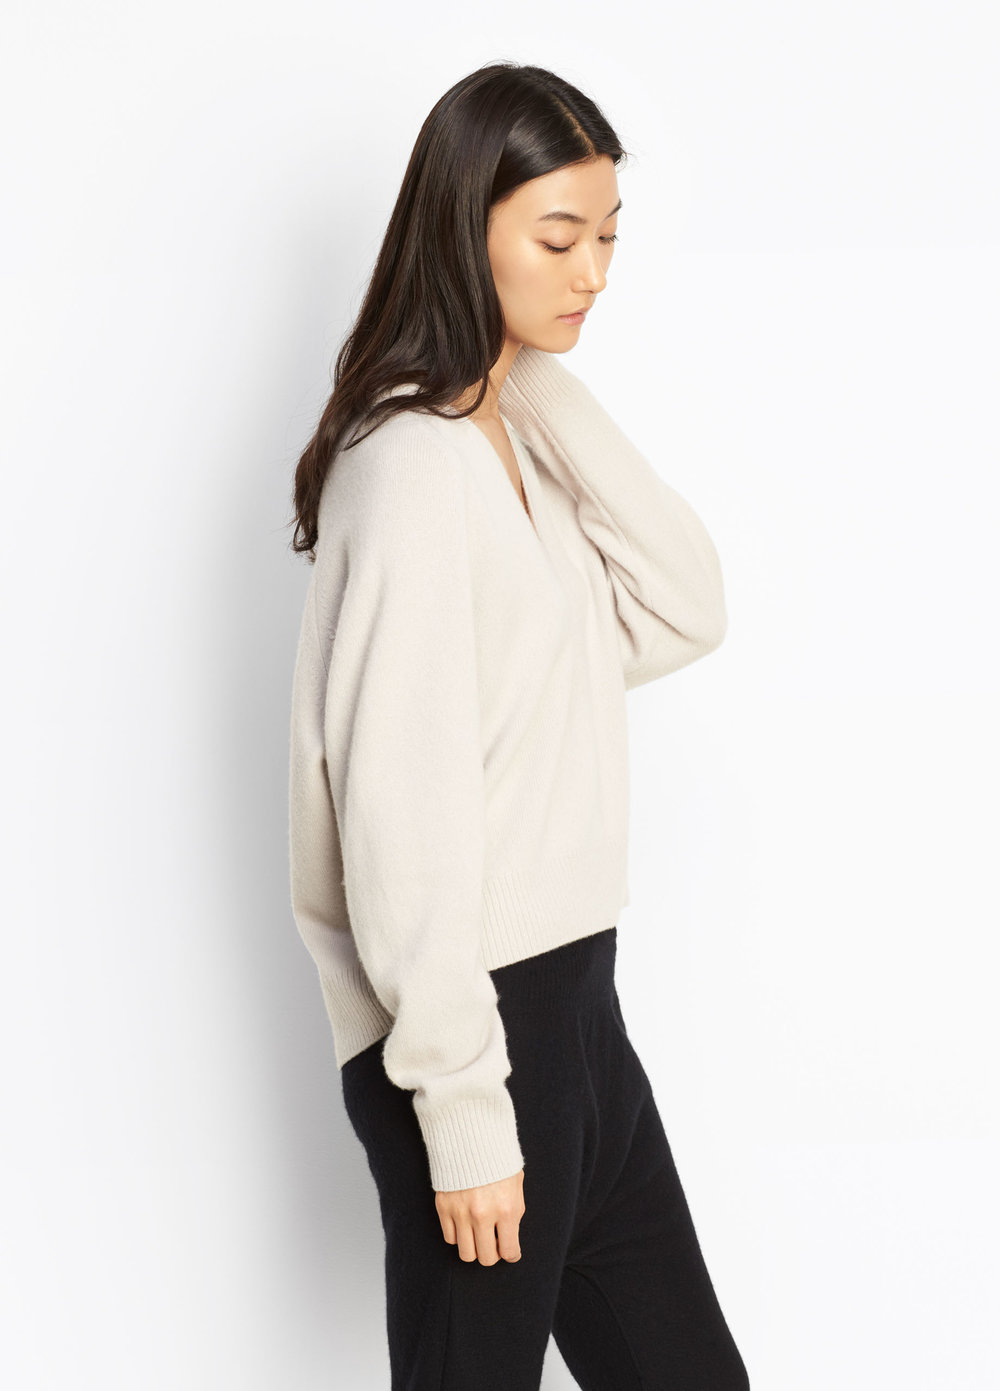 VINCE Cashmere Deep V-Neck Raglan  Raglan sleeve V-neck sweater with a contrast rib knit neck, cuffs and hem.